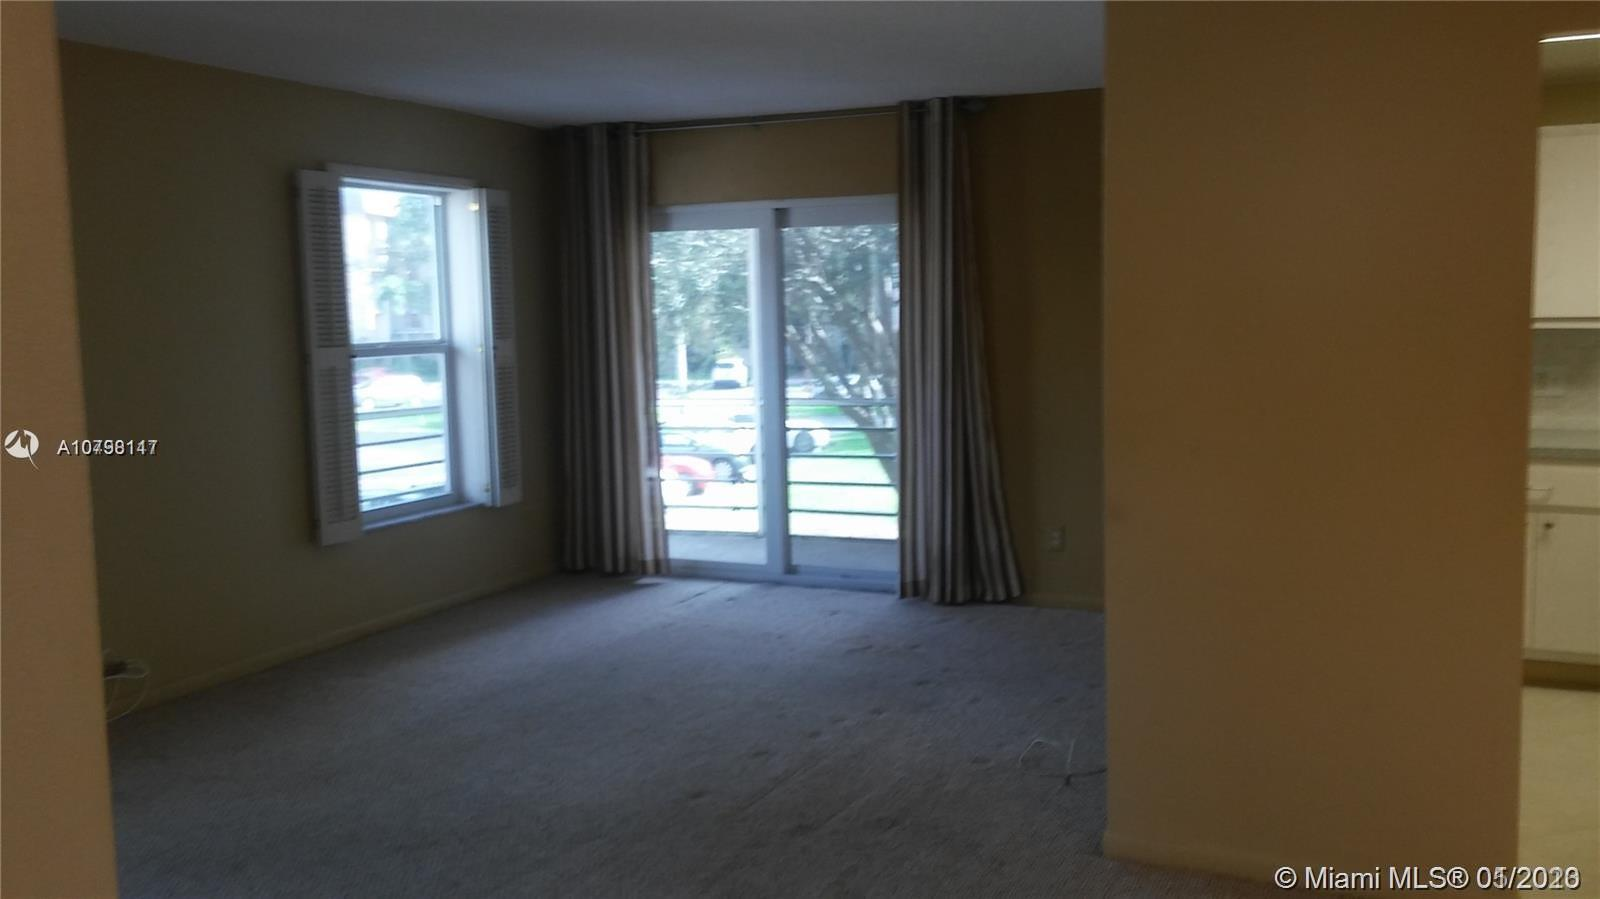 2495 SW 82nd Ave #201 For Sale A10798117, FL